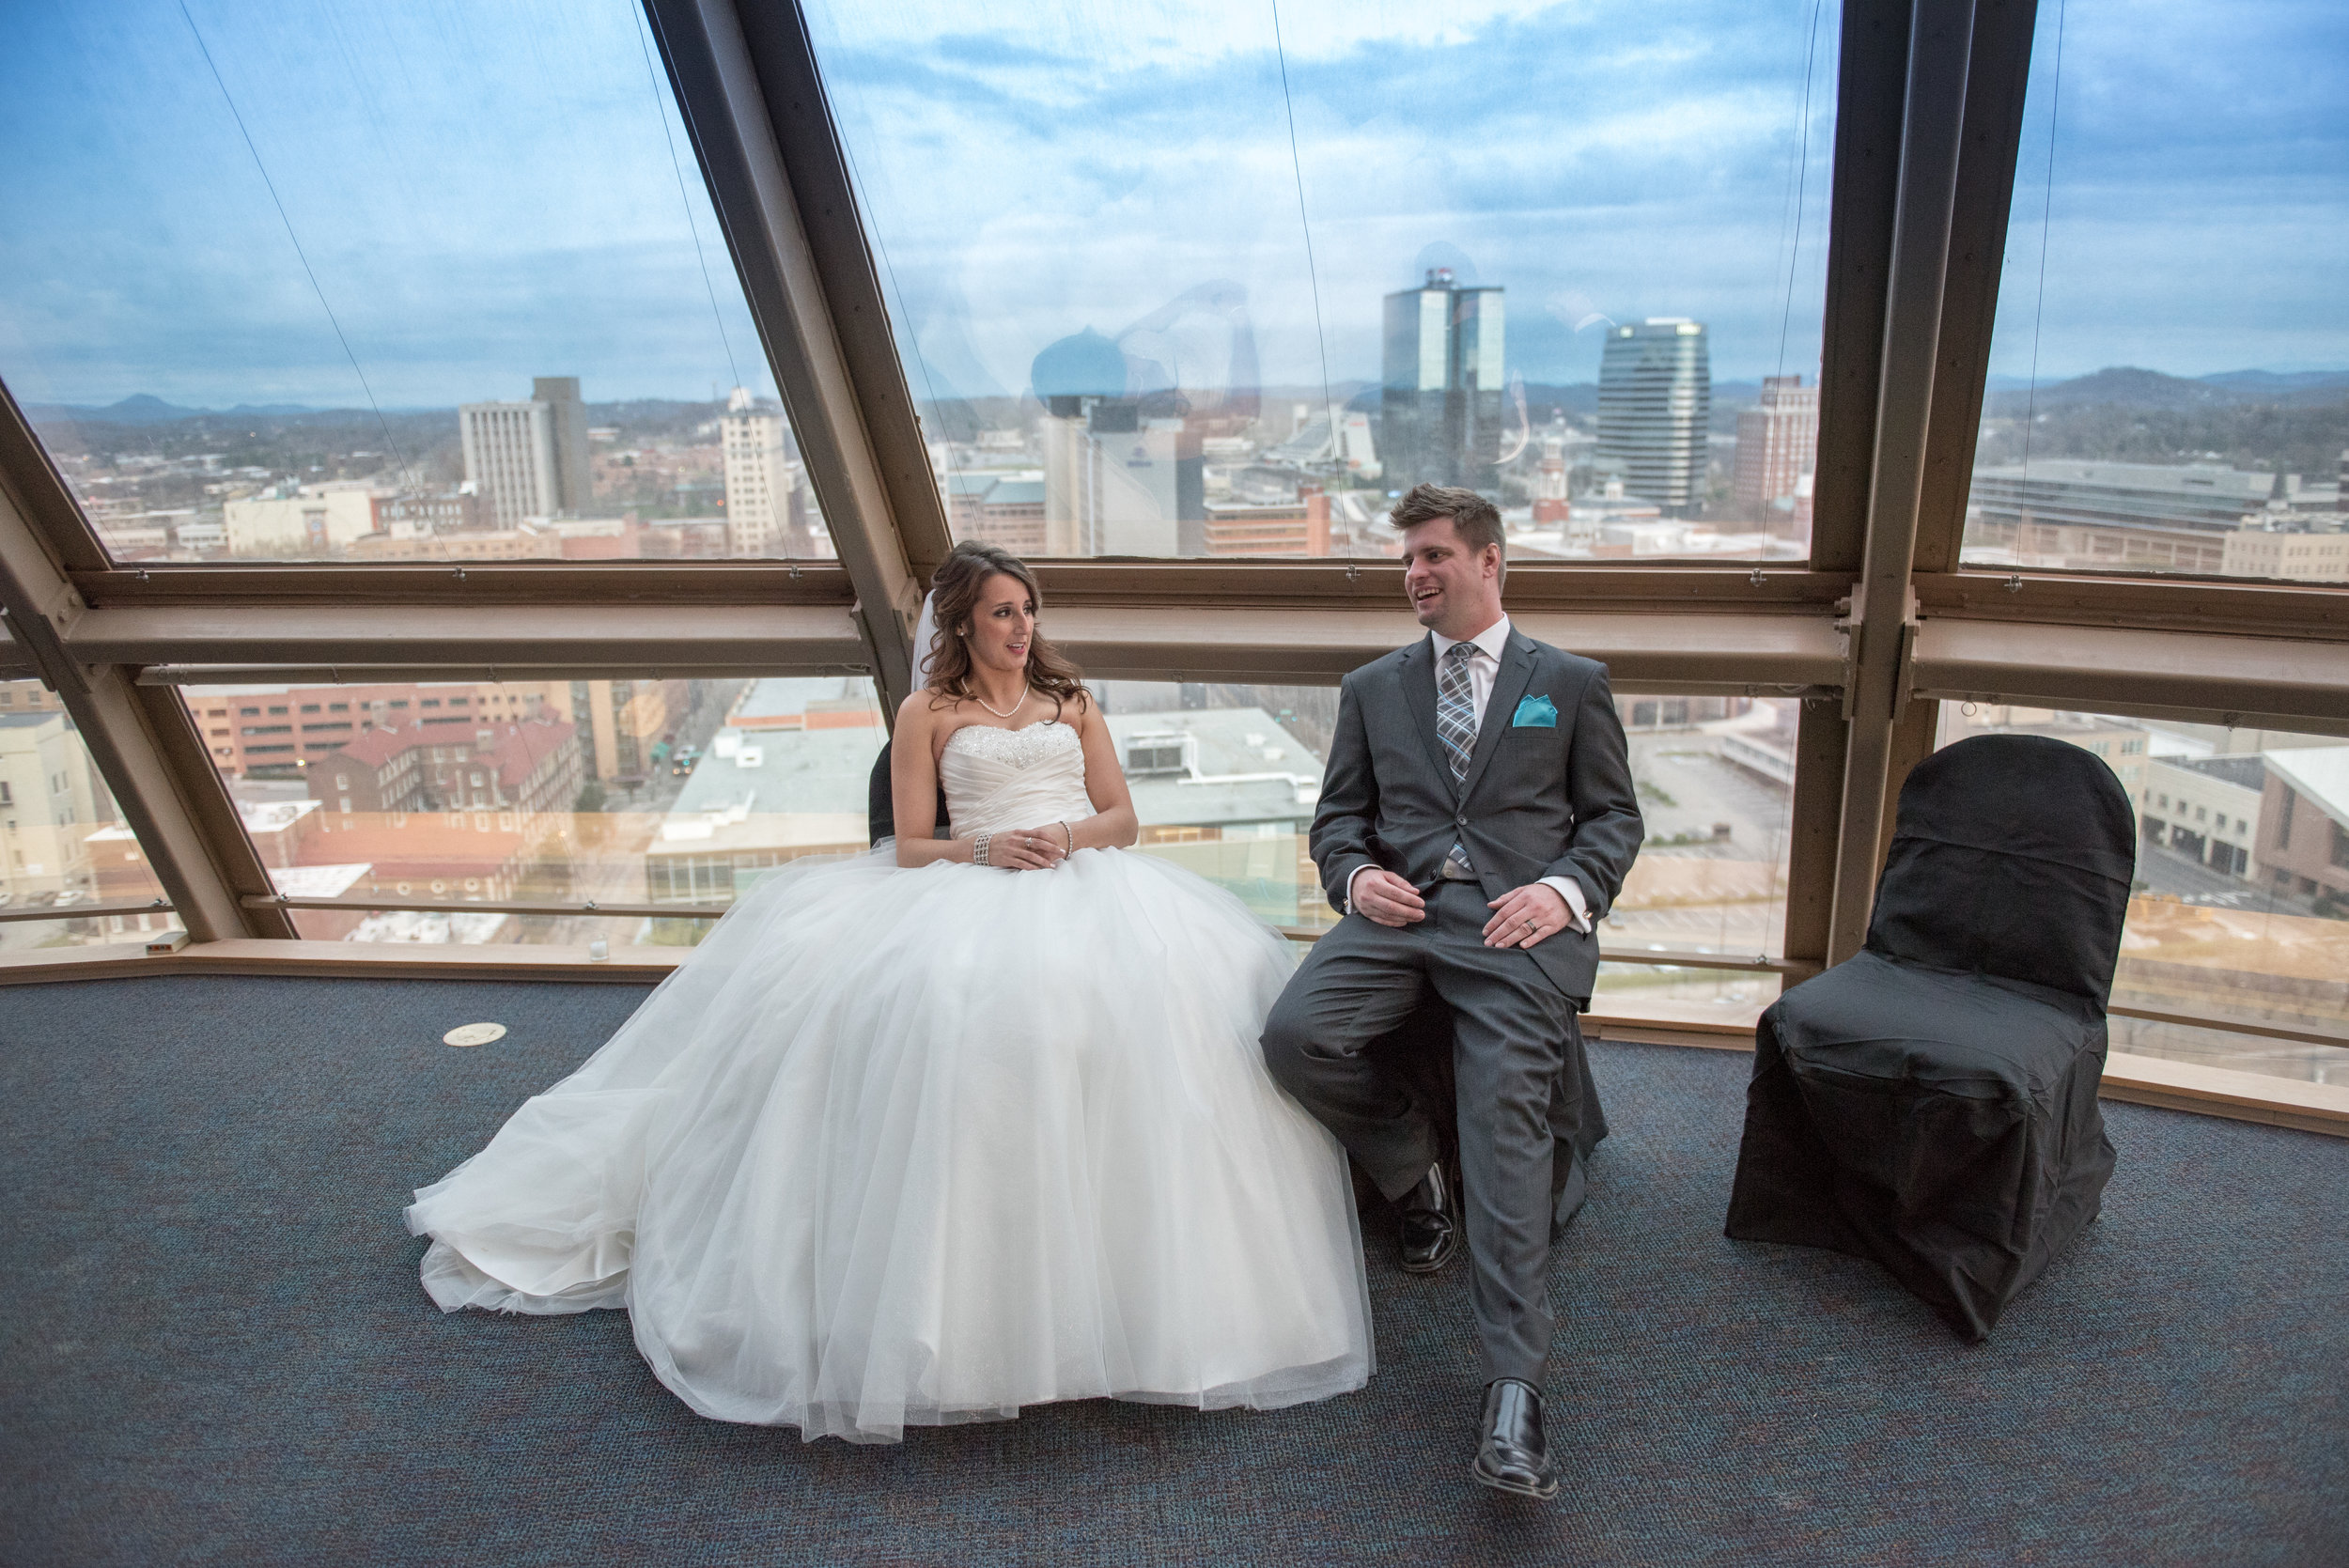 A little break between the ceremony and the reception - Jessica & Mitchell had a classic Knoxville wedding.